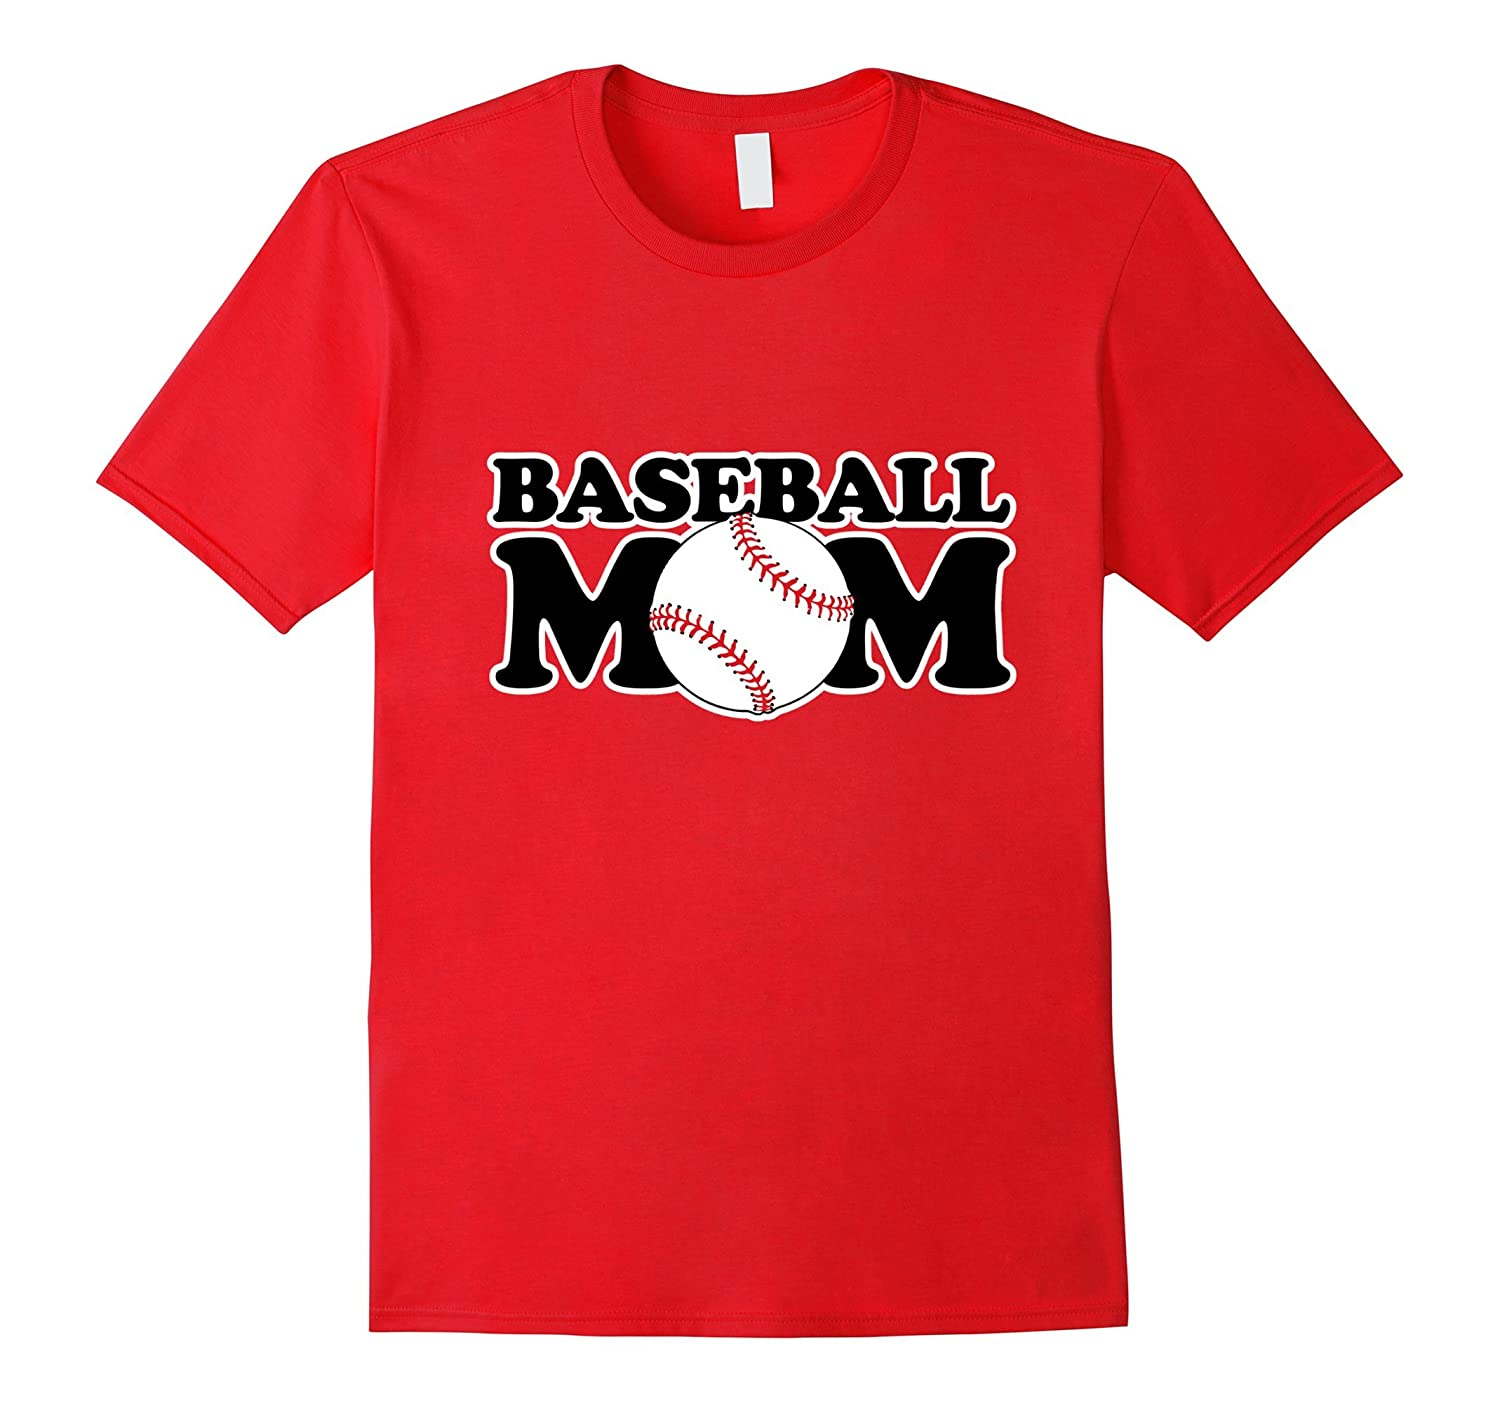 Baseball mom shirt for Moms who love baseball t-shirt-TH